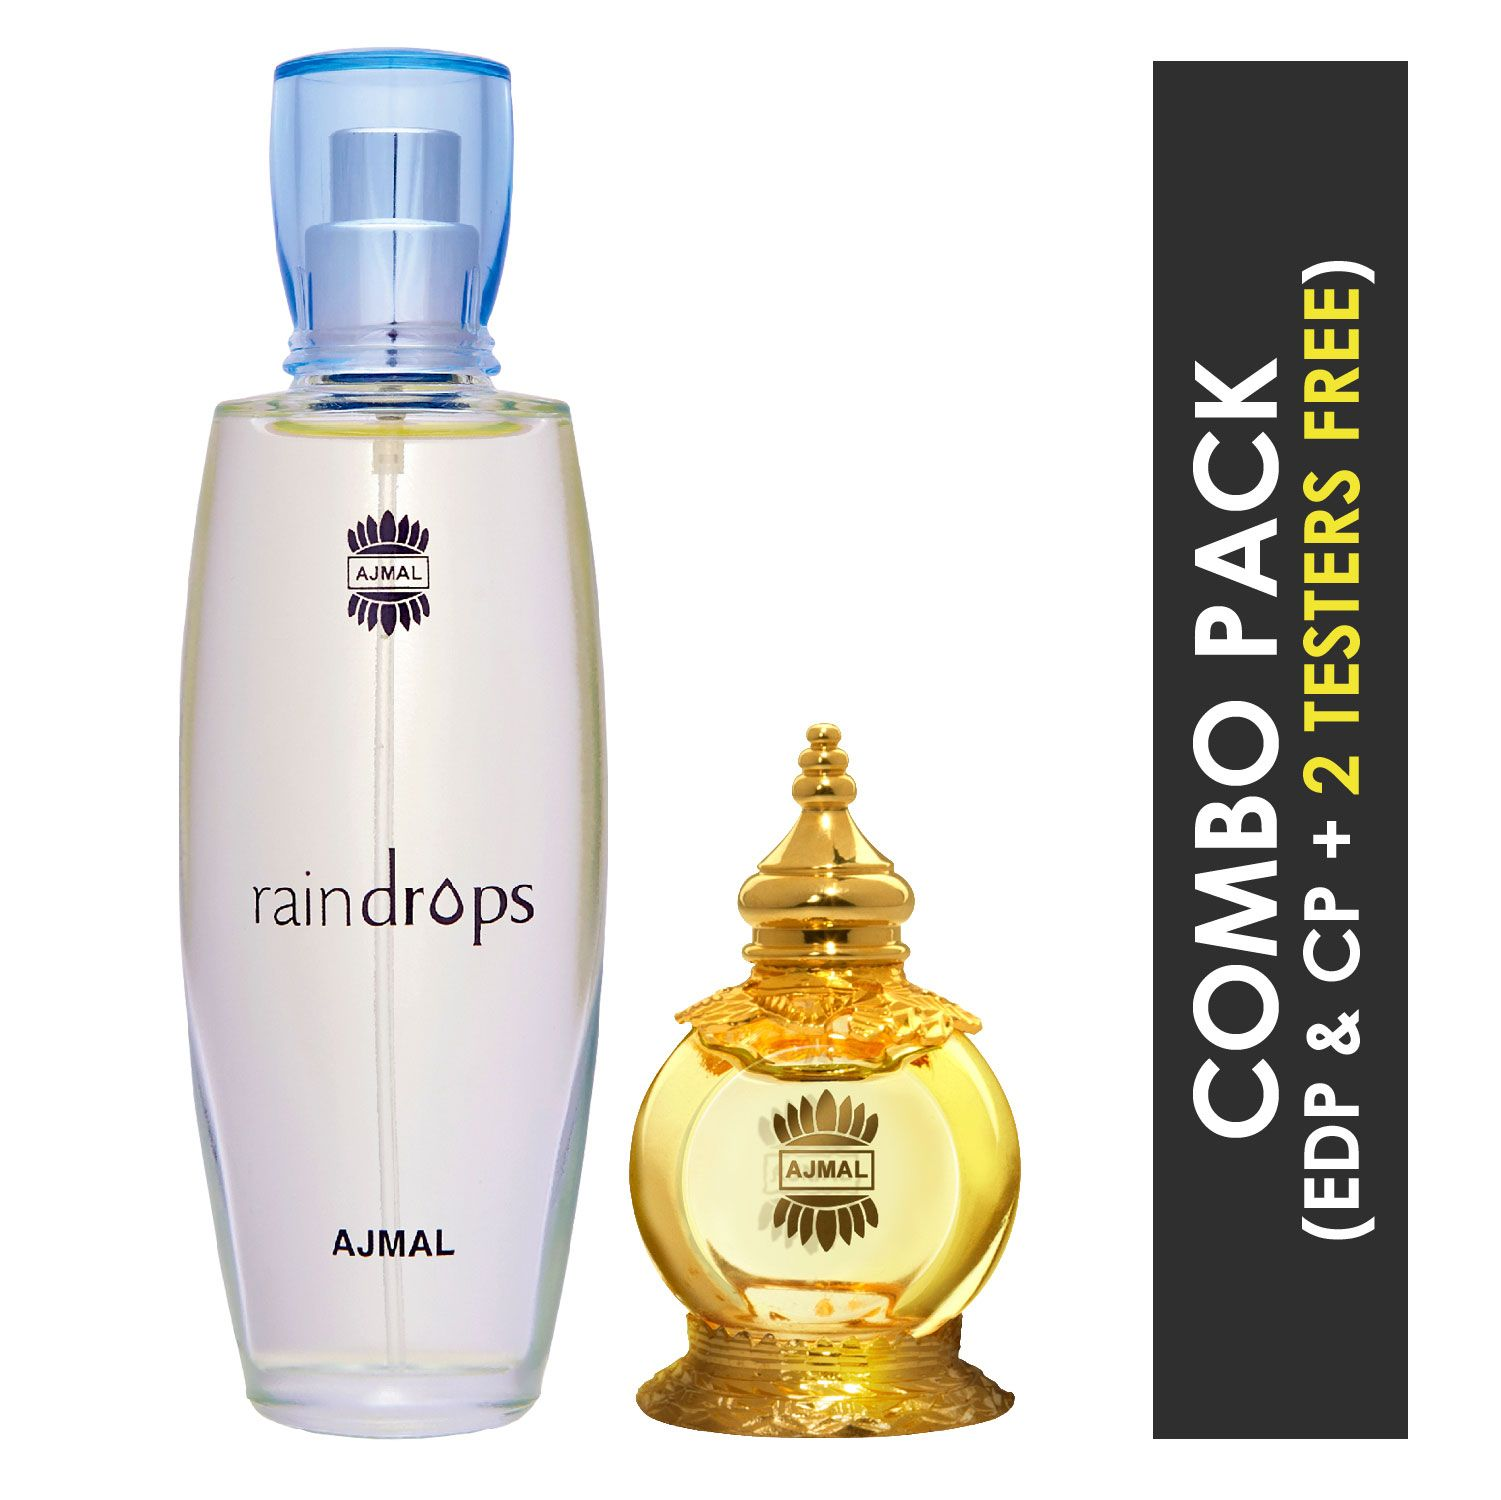 Ajmal | Ajmal Raindrops EDP Floral Chypre Perfume 50ml for Women and Mukhallat AL Wafa Concentrated Perfume Oil Oriental Musky Alcohol-free Attar 12ml for Unisex + 2 Parfum Testers FREE